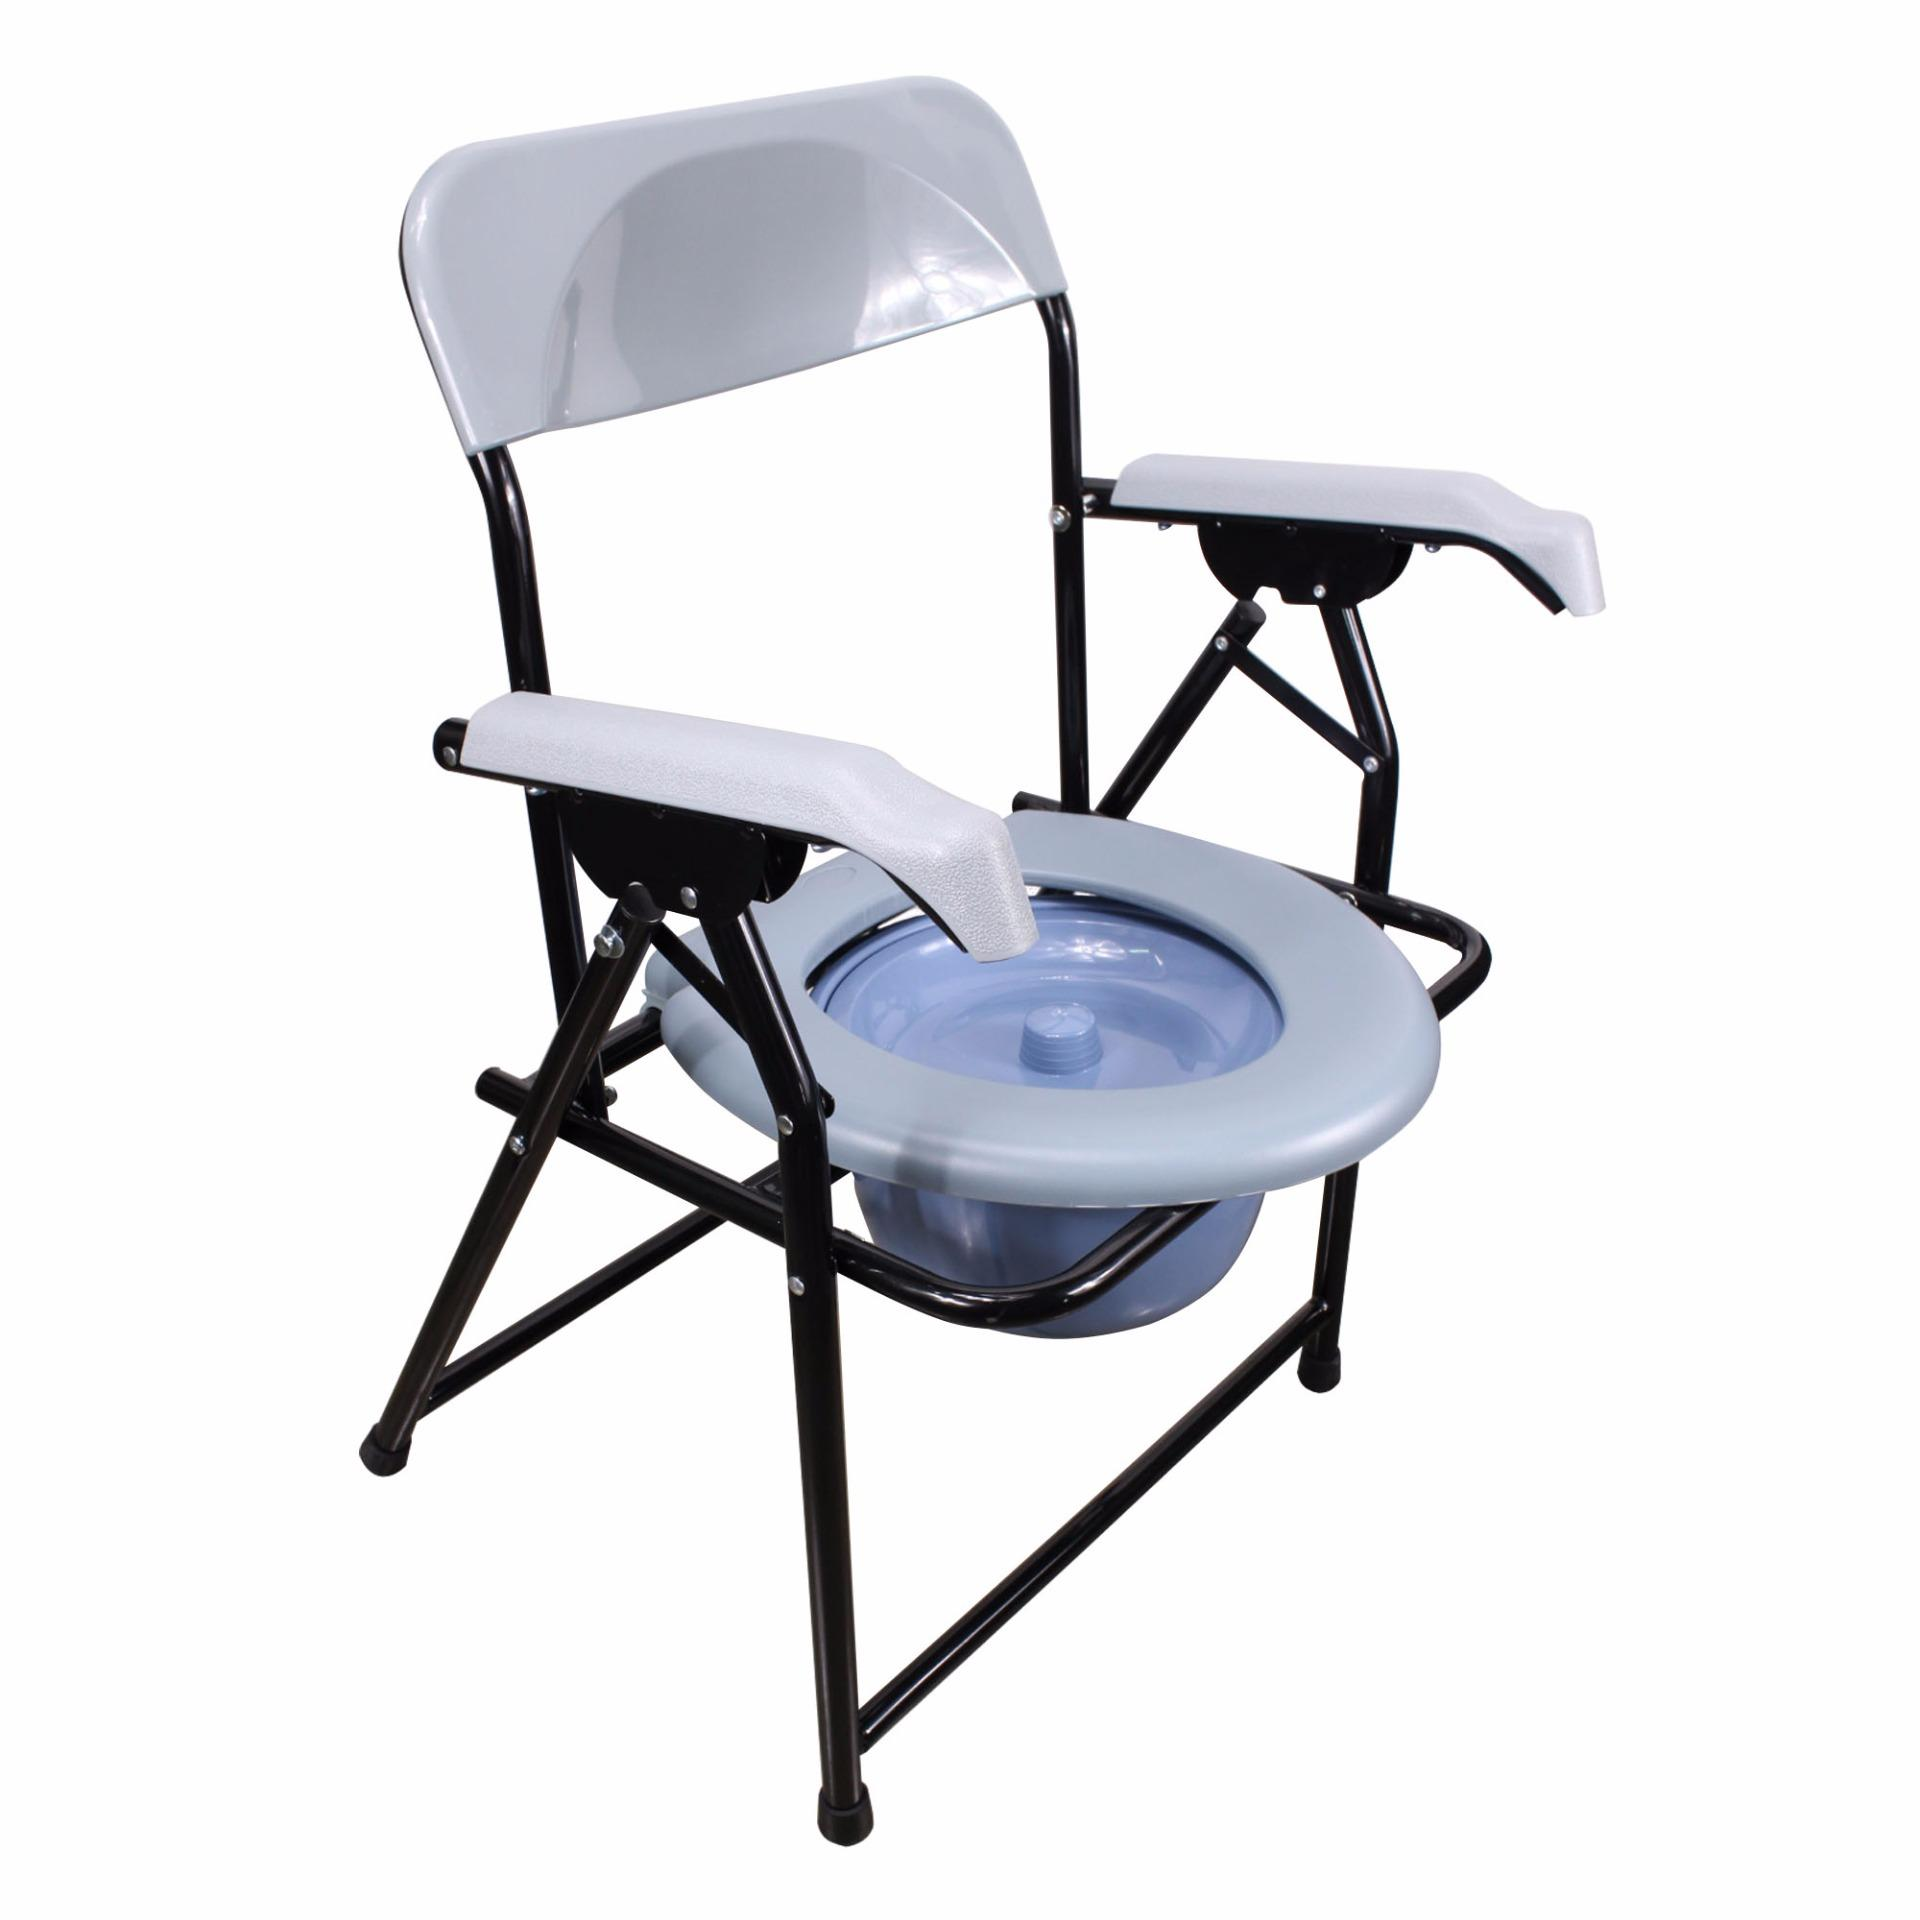 Folding commode chair - Phoenixhub Foldable Commode Chair With Chamber Pot 8993 Gray Lazada Ph